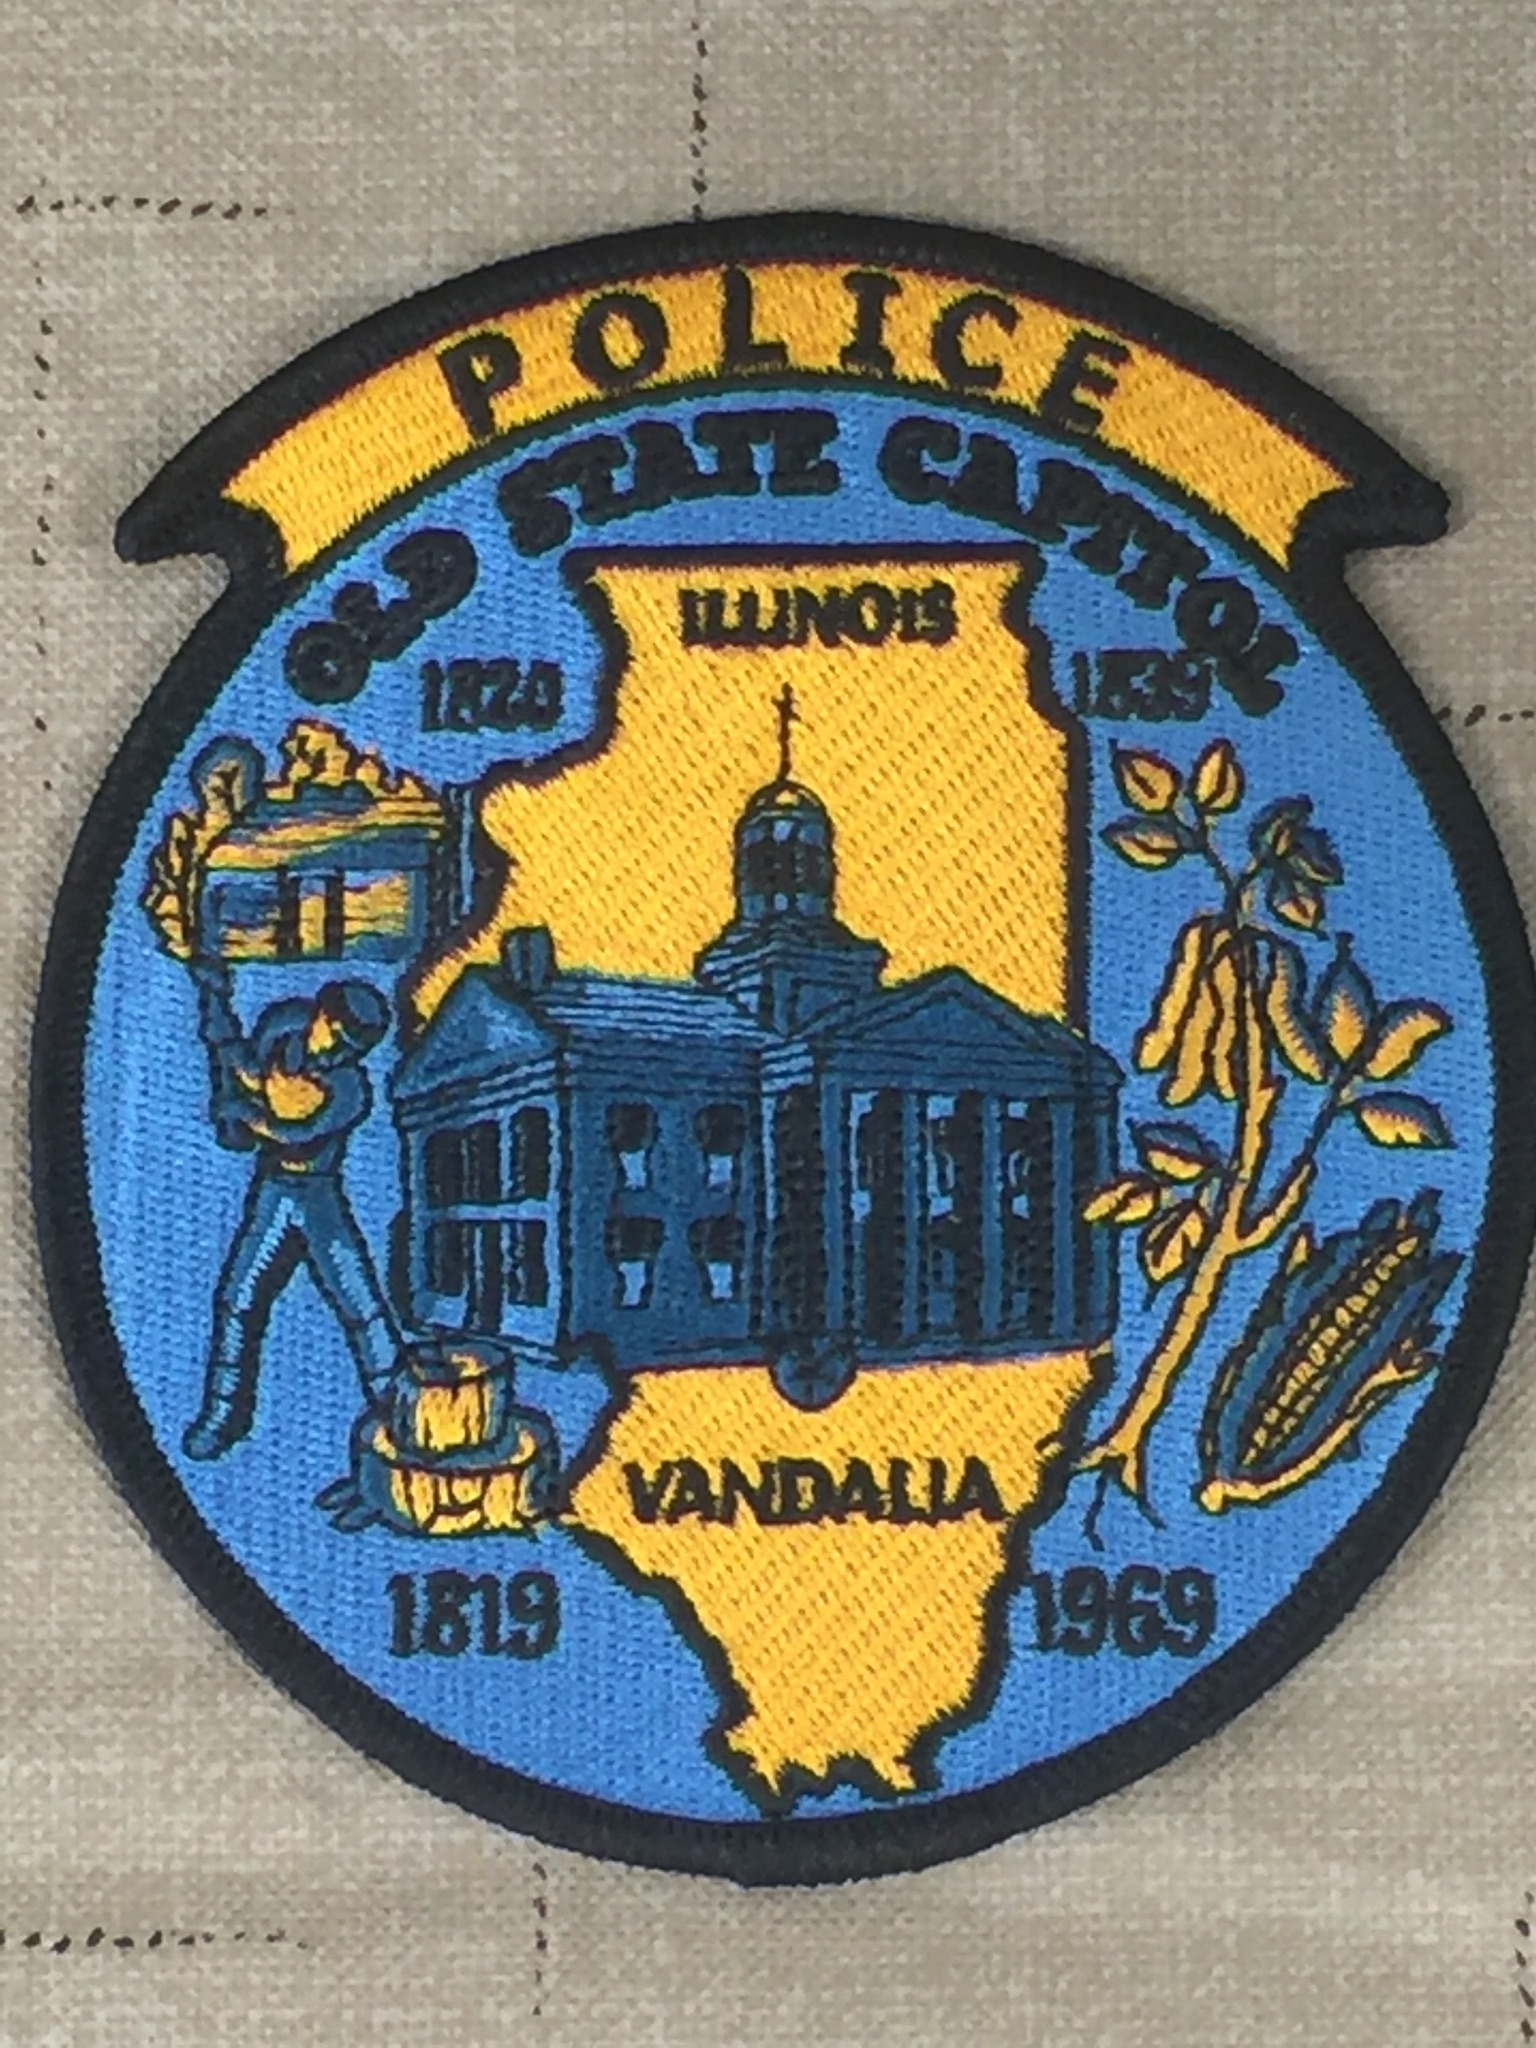 Two injured in accident Monday afternoon in Vandalia